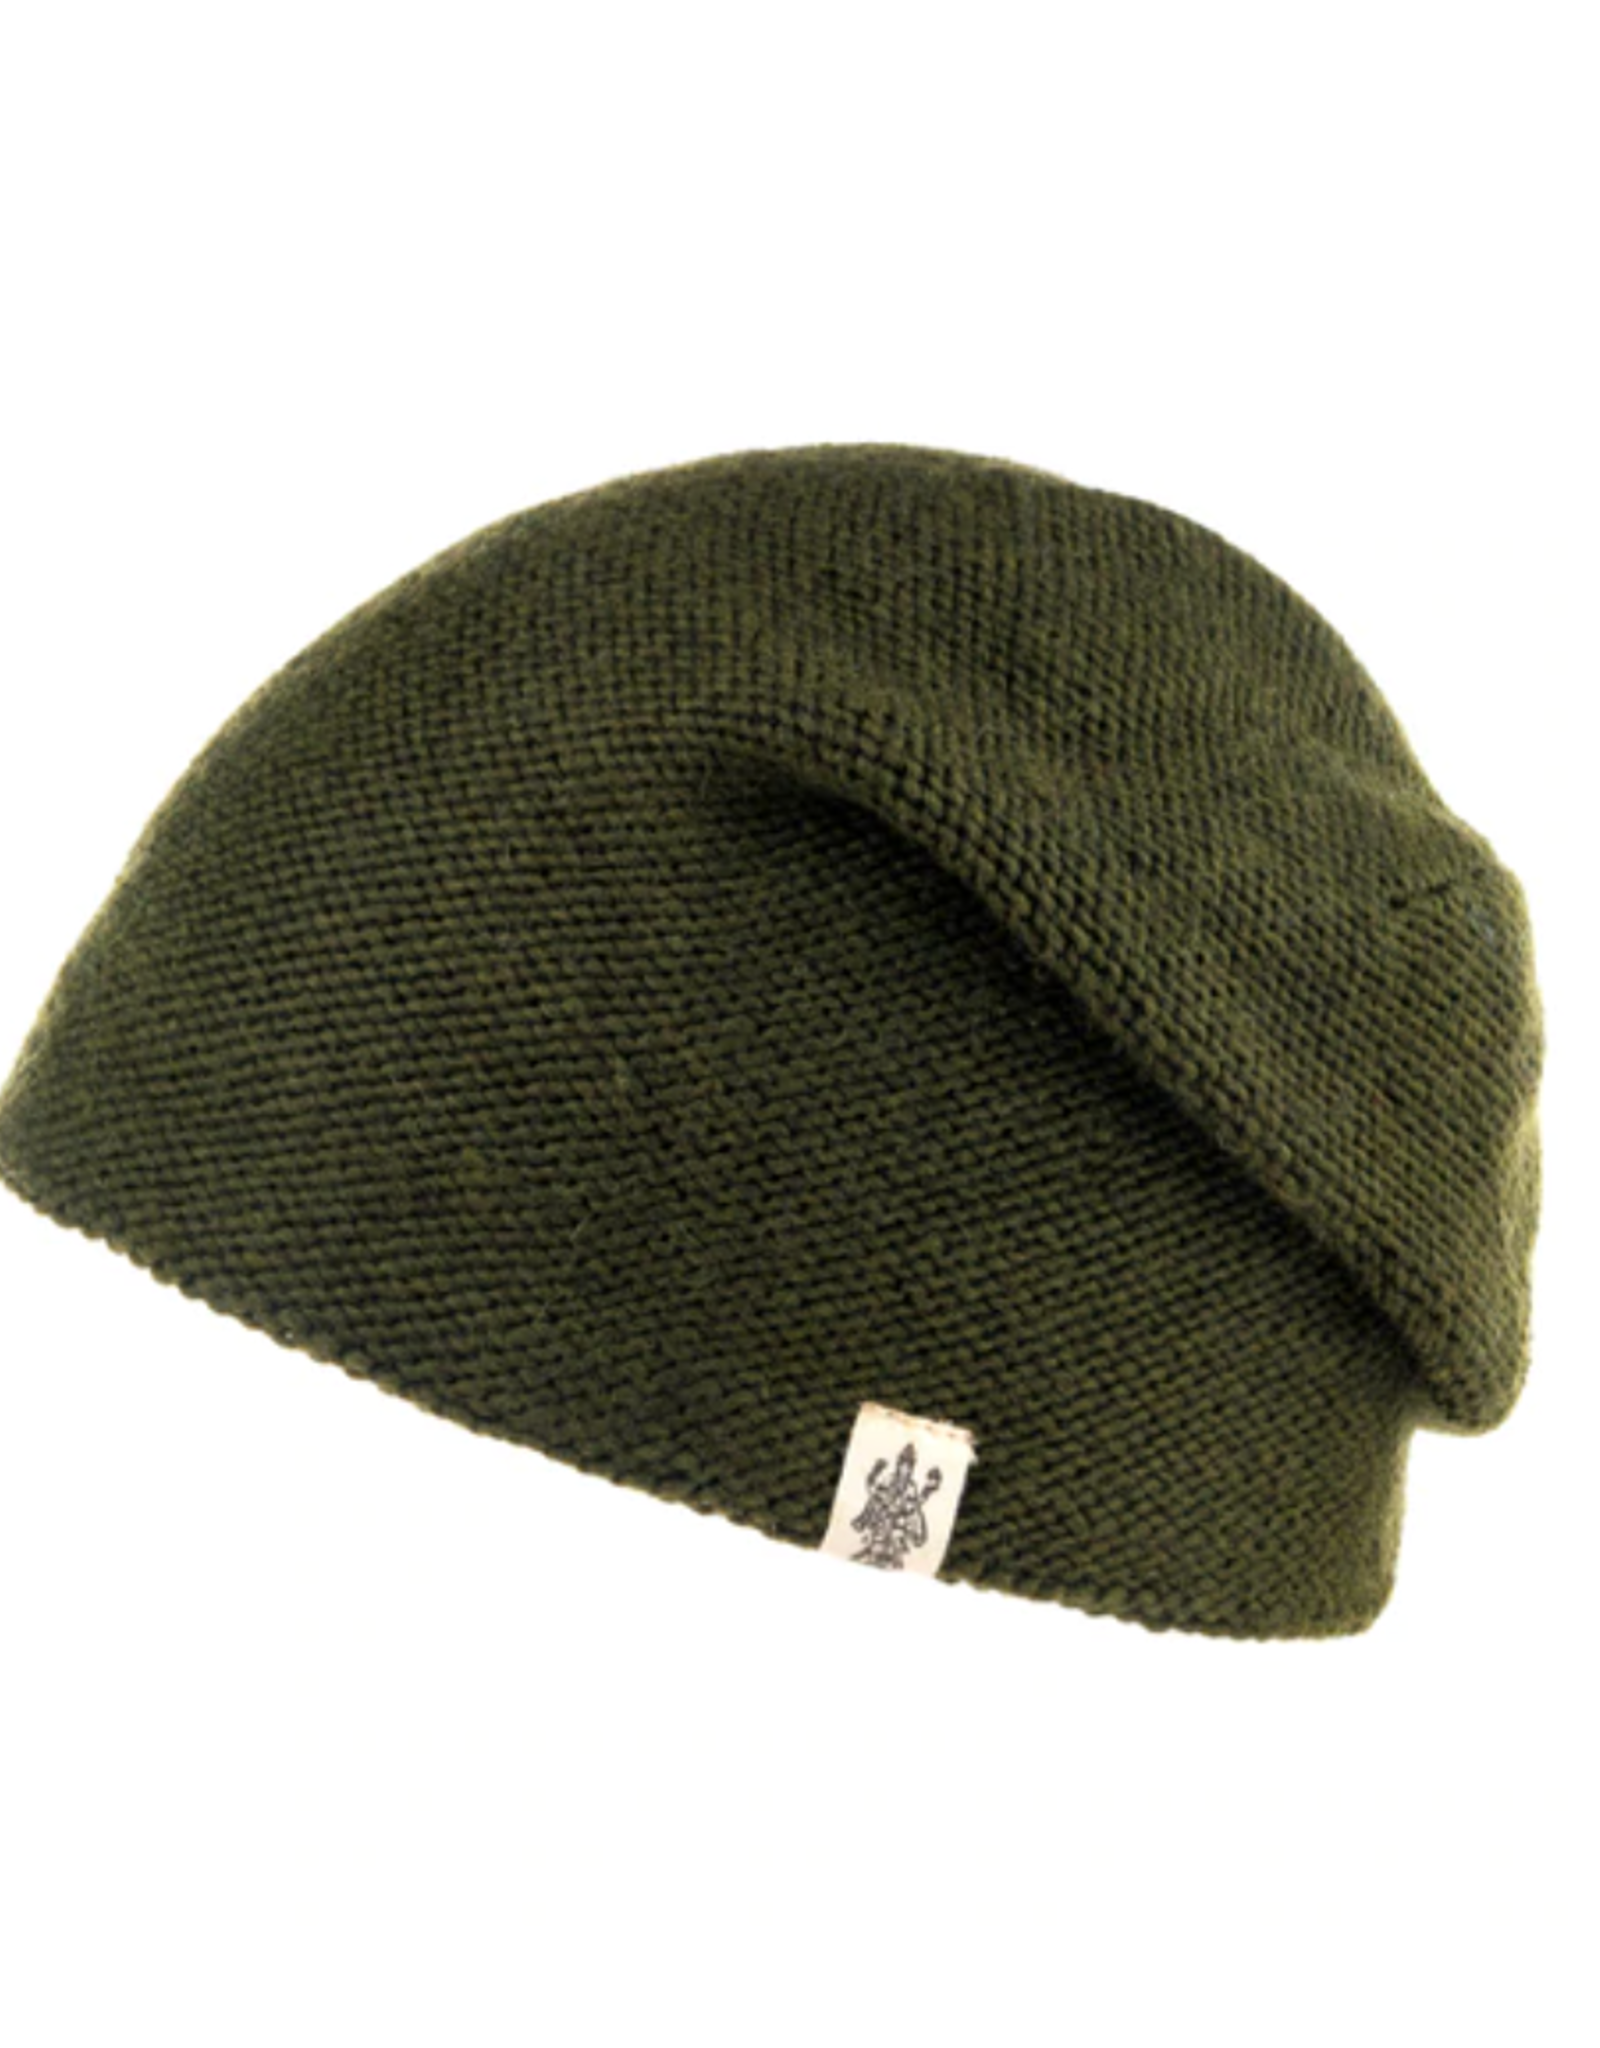 Hat: The Depp Slouch